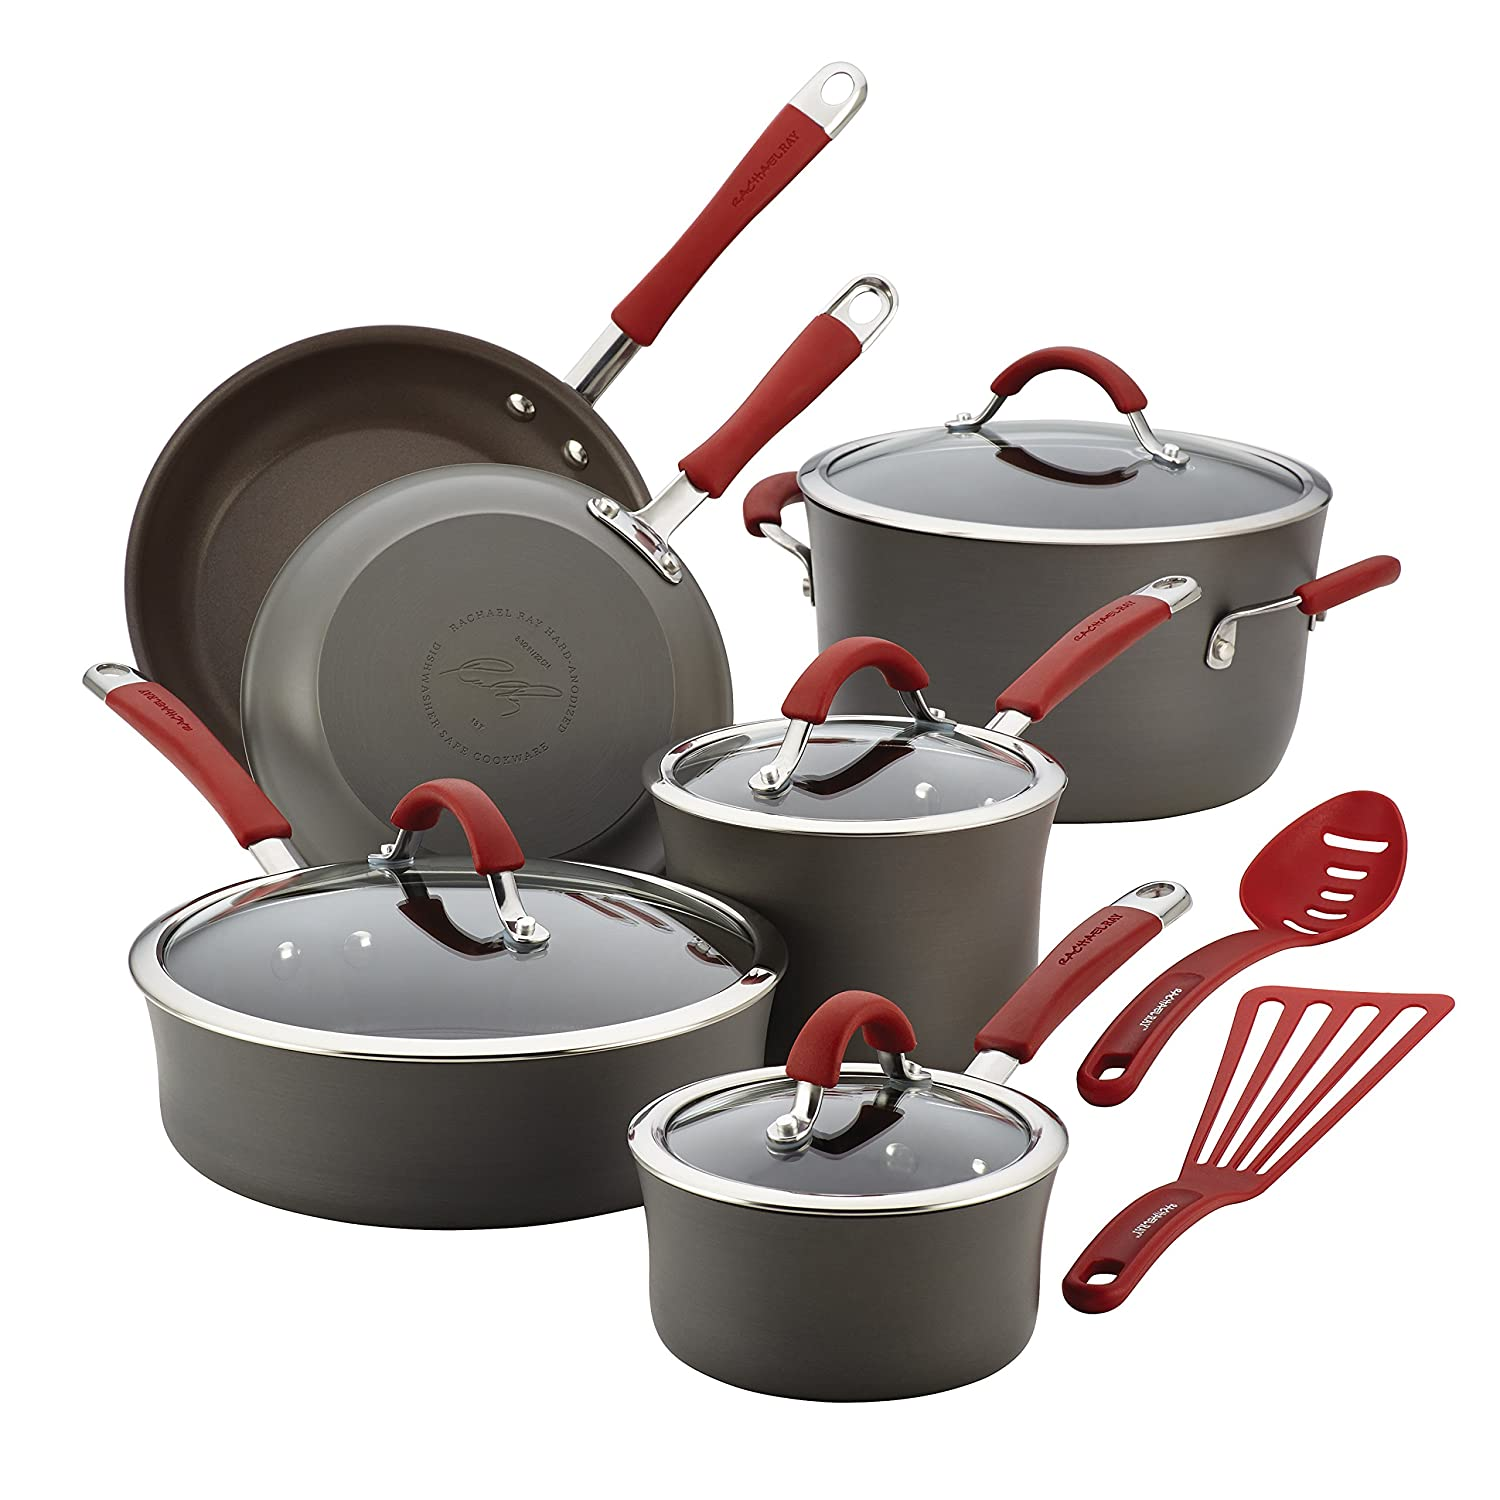 Rachael Ray Cucina Hard-Anodized Aluminum Nonstick Cookware Set, 12-Piece, Gray, Cranberry Red Handles Meyer 87630